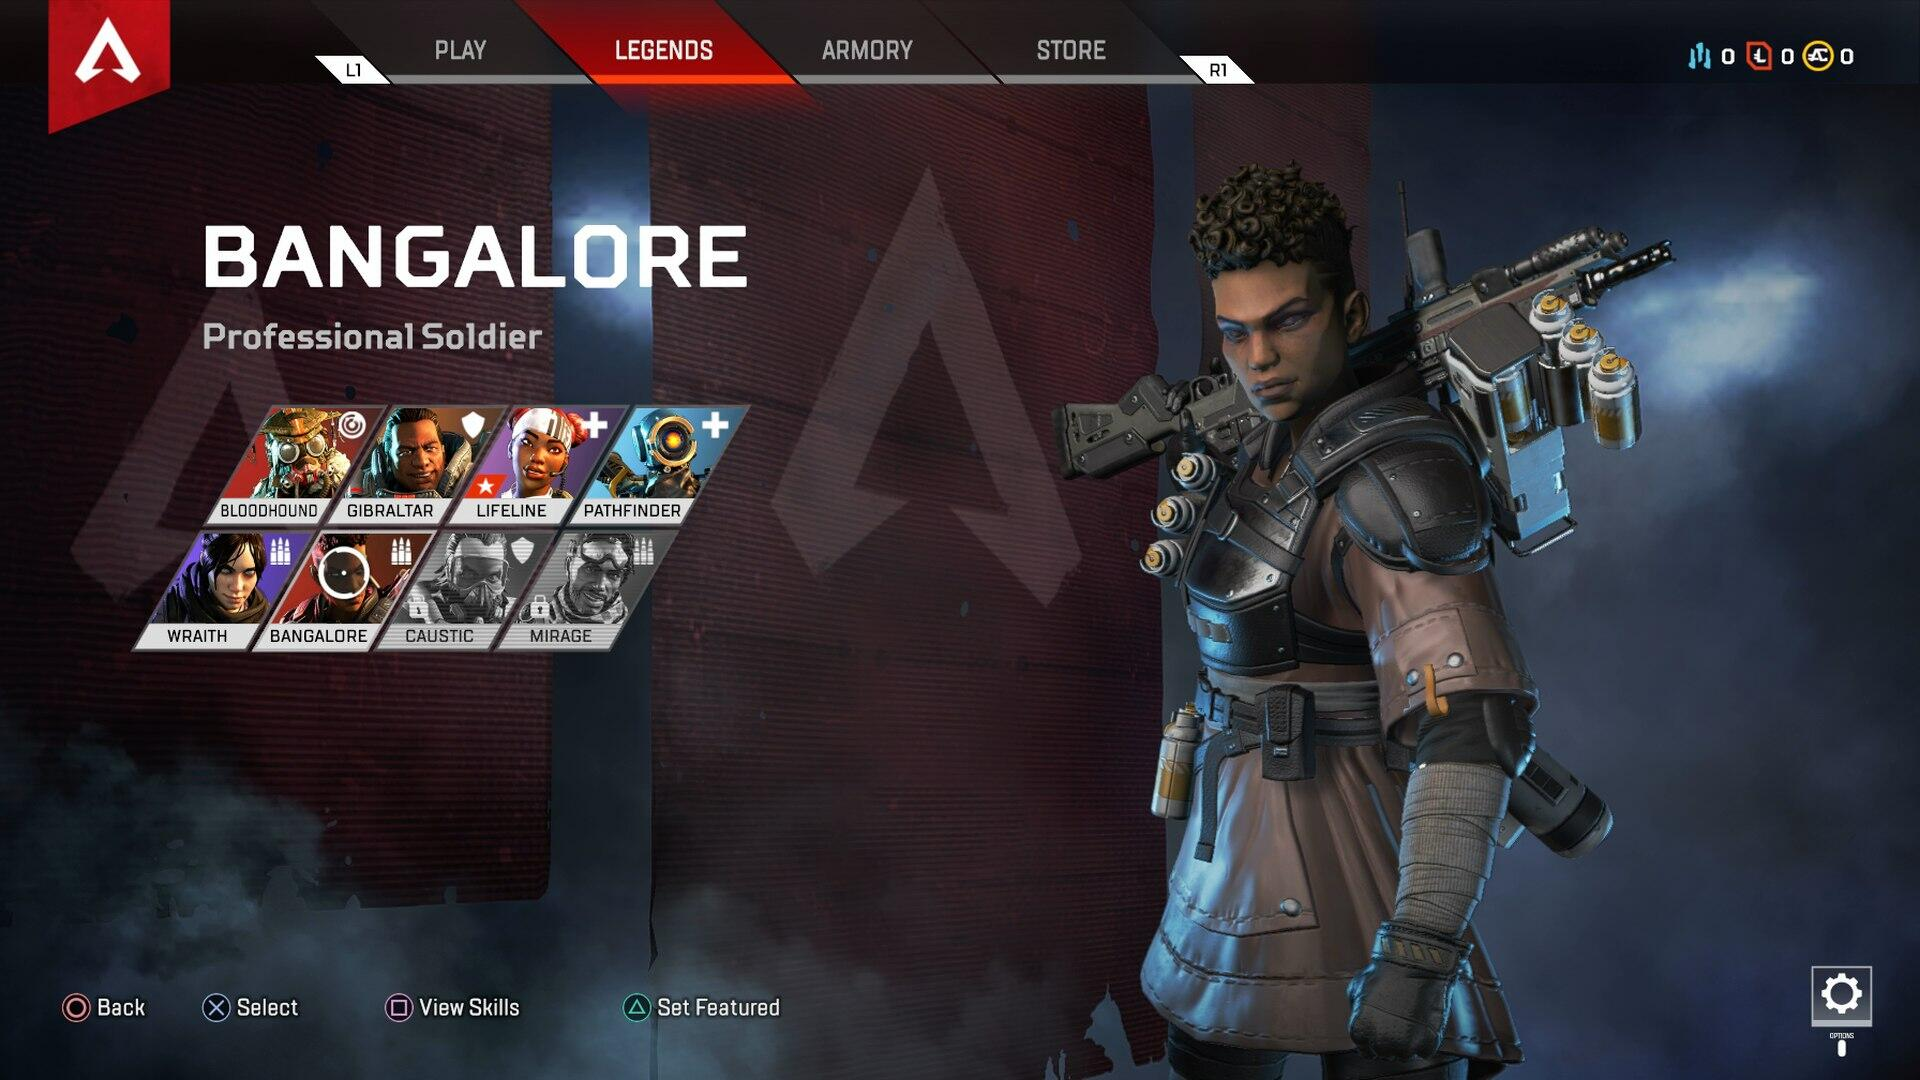 Apex Legends Bangalore - Lore, Tips, Abilities, Legendary Skins, How to Win With Bangalore